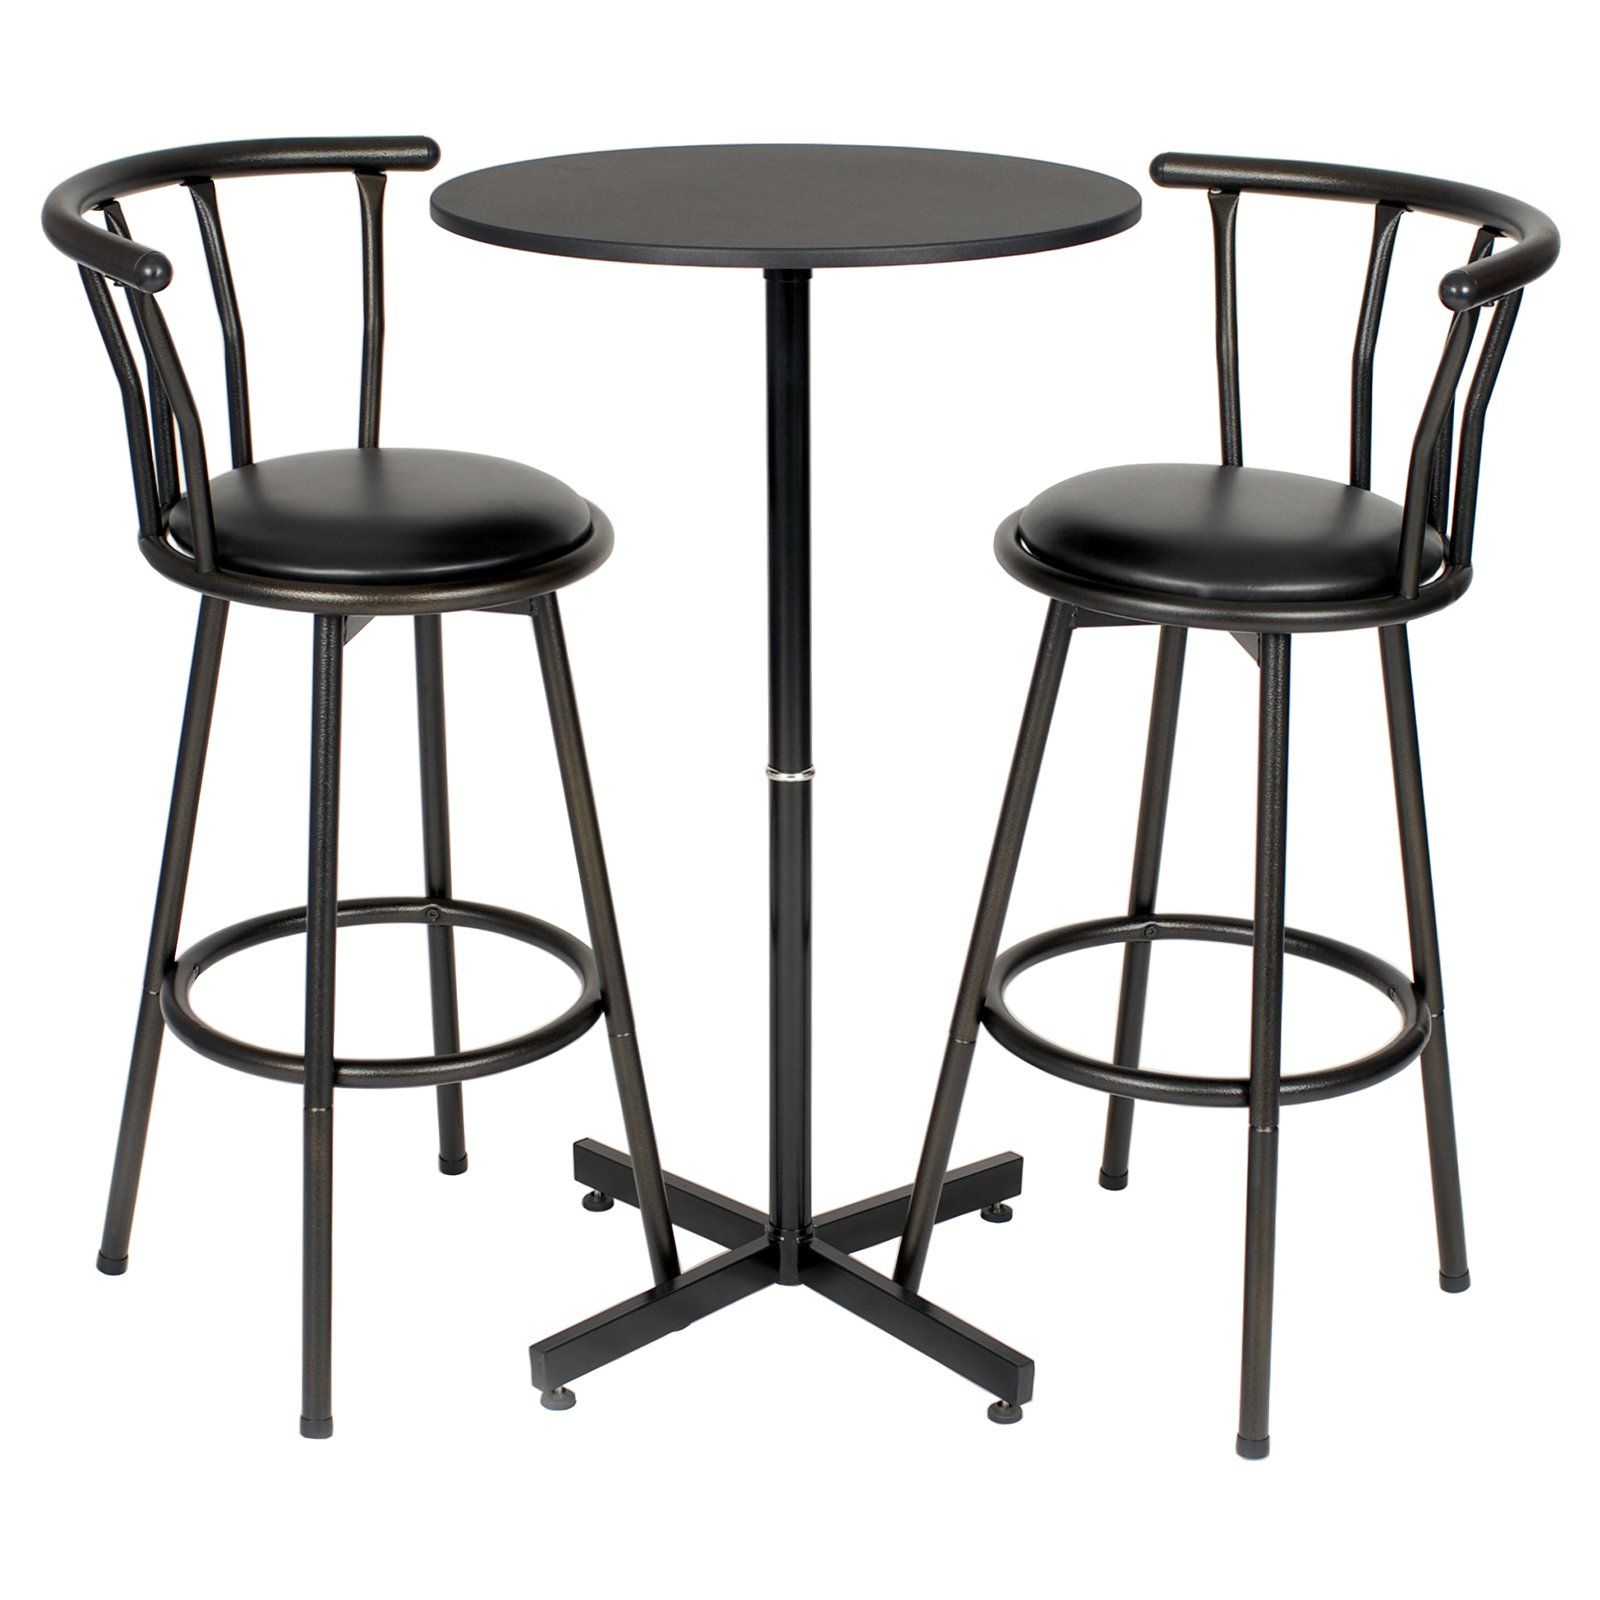 Brilliant Roundhill Furniture Nor Hill 3 Piece Bar Height Table Set Ibusinesslaw Wood Chair Design Ideas Ibusinesslaworg